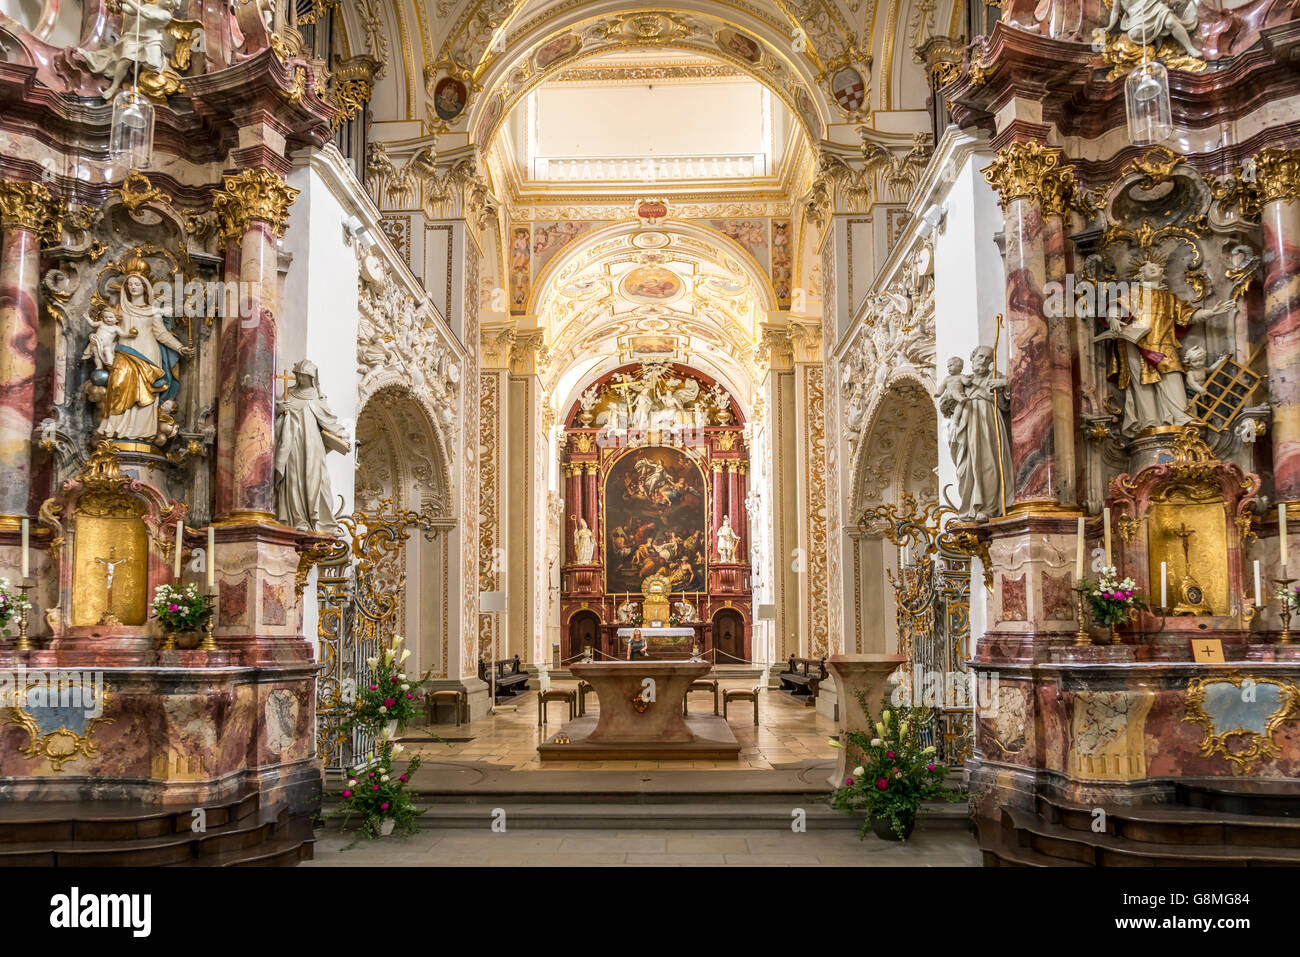 interior and altar of the church st lorenz basilica kempten stock photo royalty free image. Black Bedroom Furniture Sets. Home Design Ideas